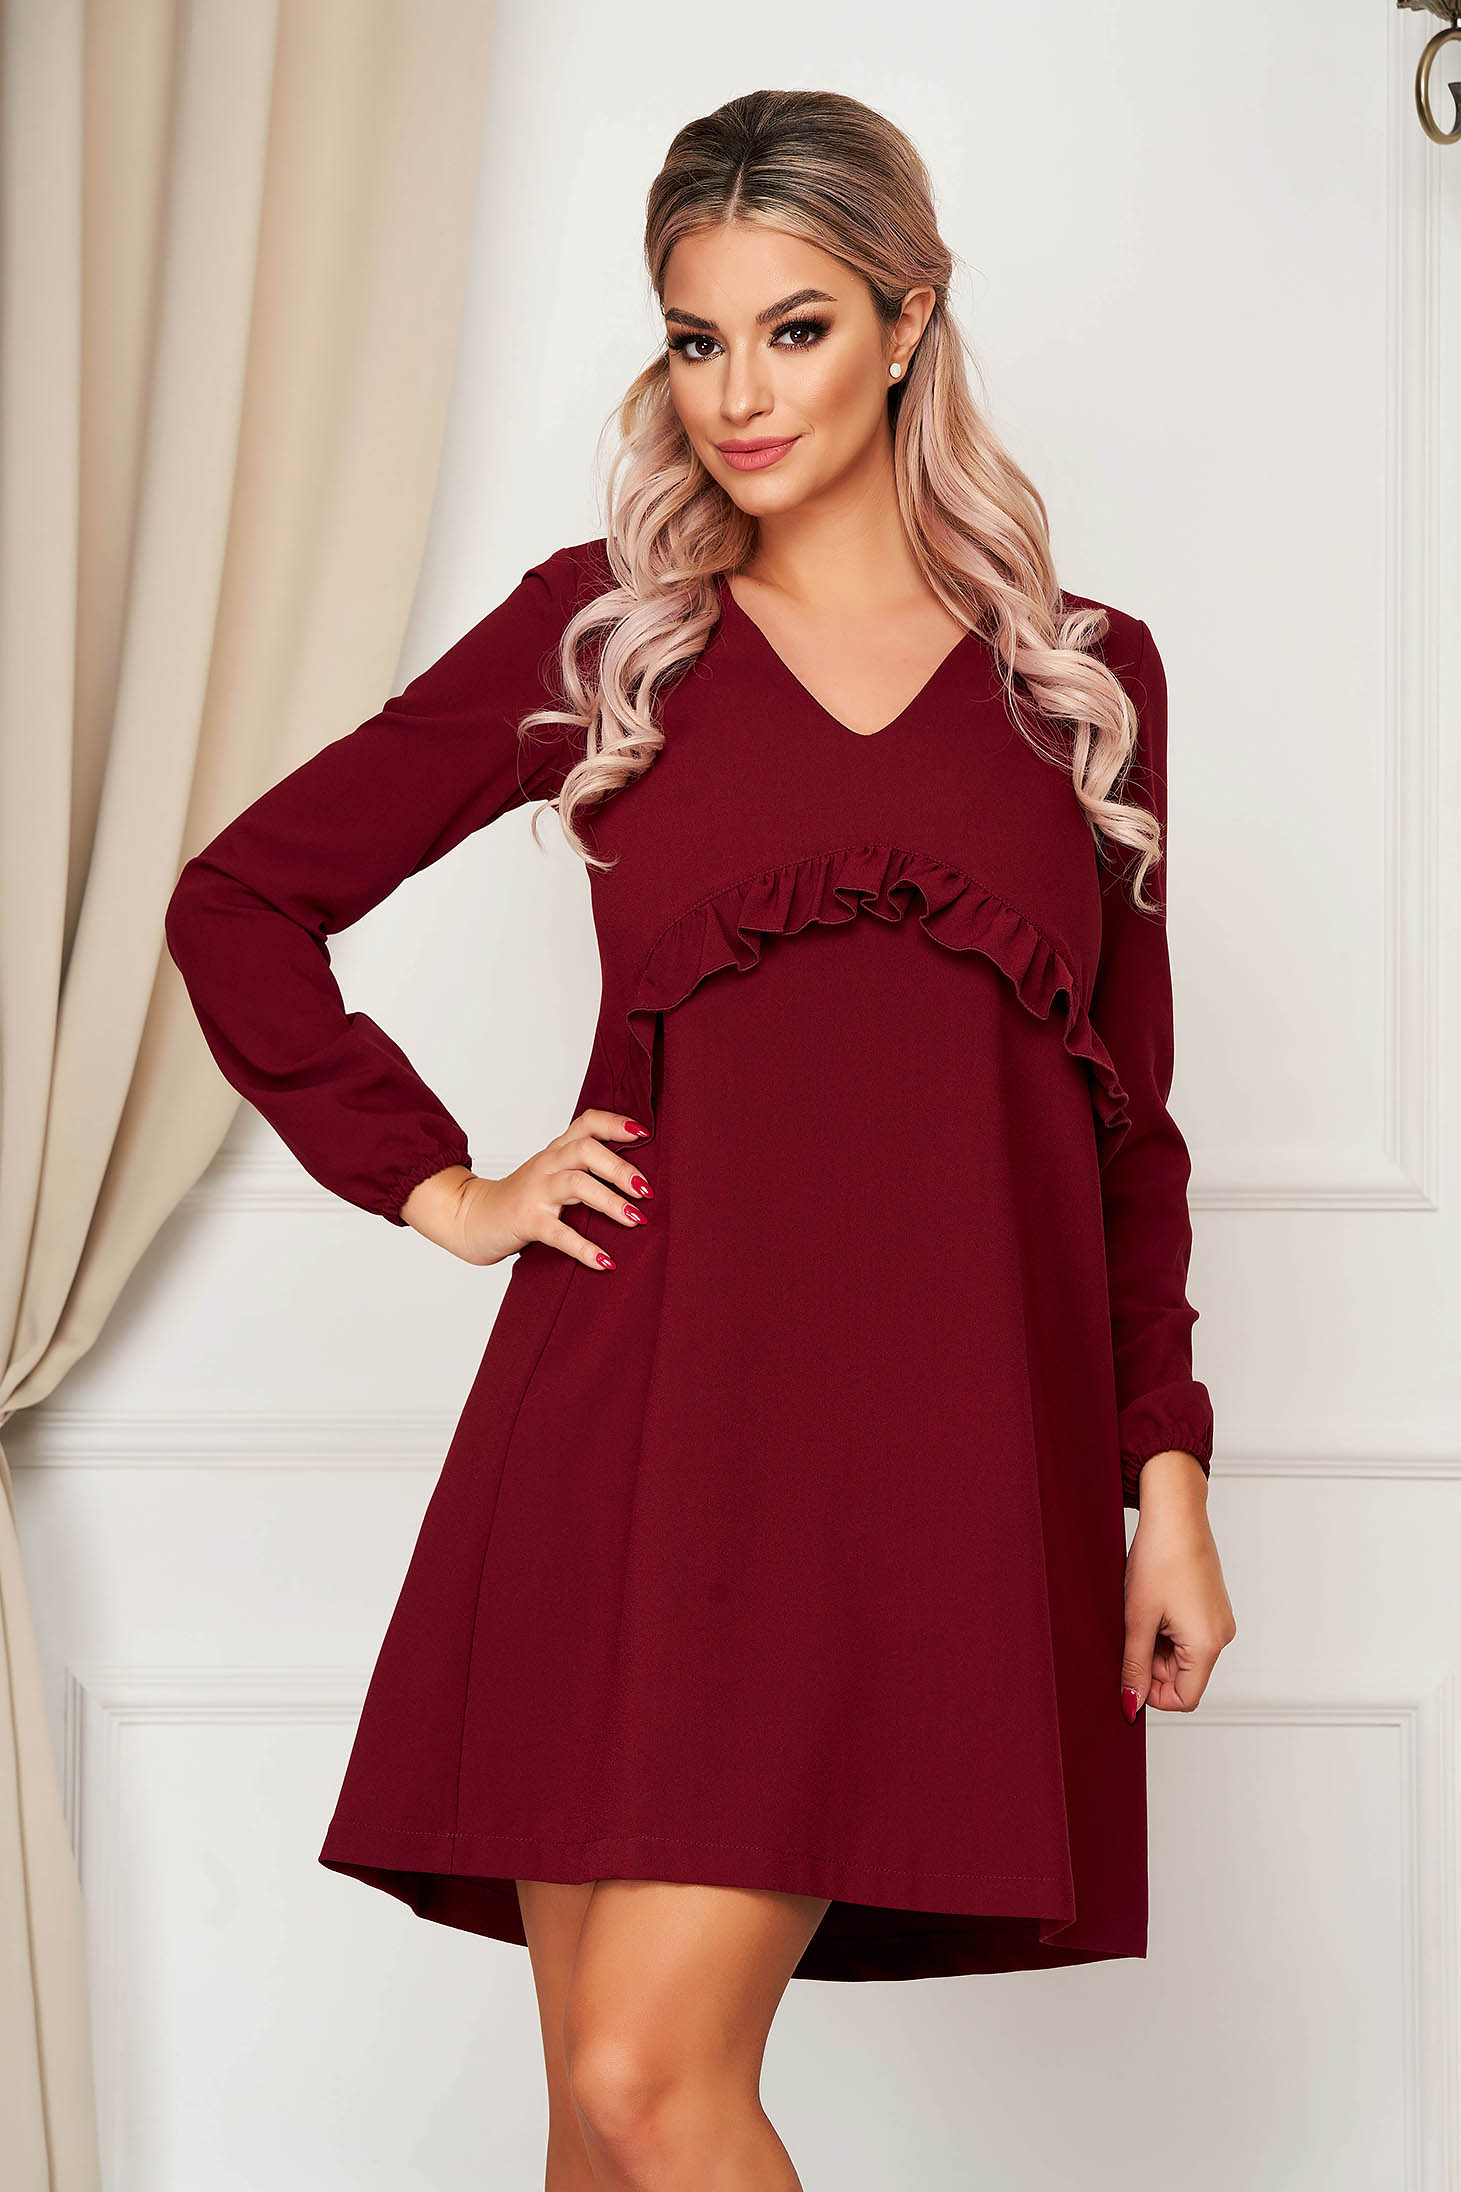 Dress StarShinerS burgundy midi flared with ruffles on the chest with v-neckline elastic held sleeves